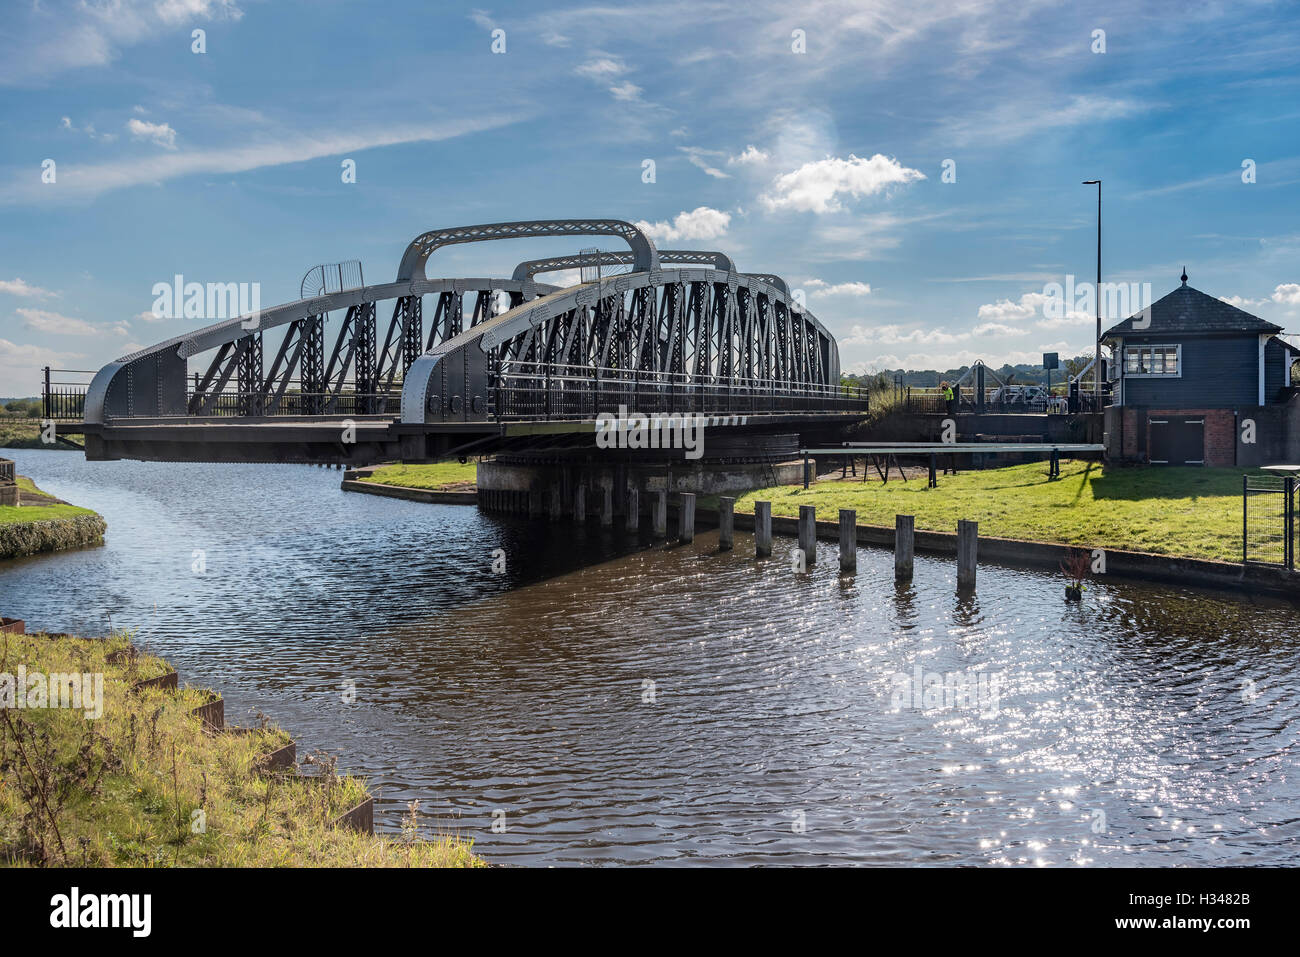 The swingbridge at Sutton Weaver on the river Weaver, West Cheshire North West England. - Stock Image